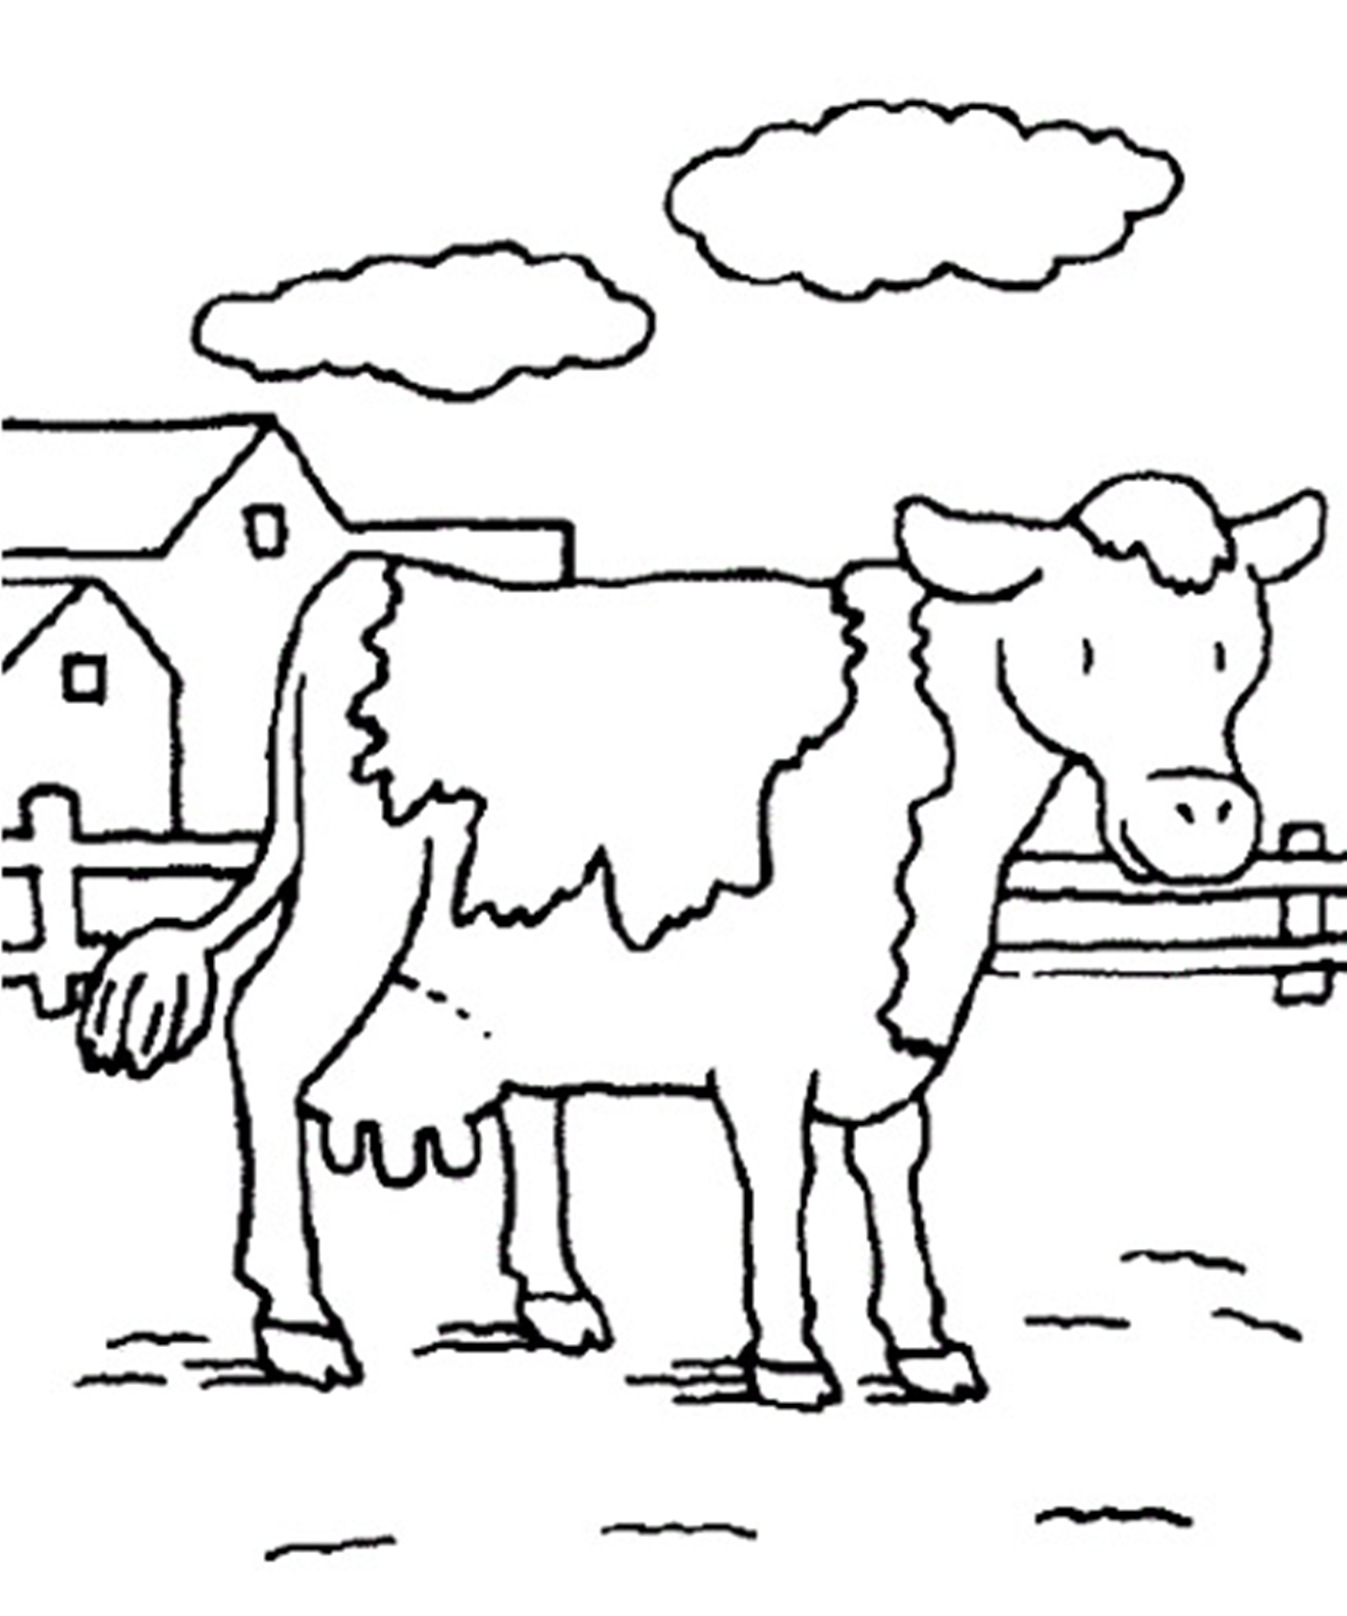 1347x1616 Cute Cow Coloring Pages Baby With Mom Coloringstar